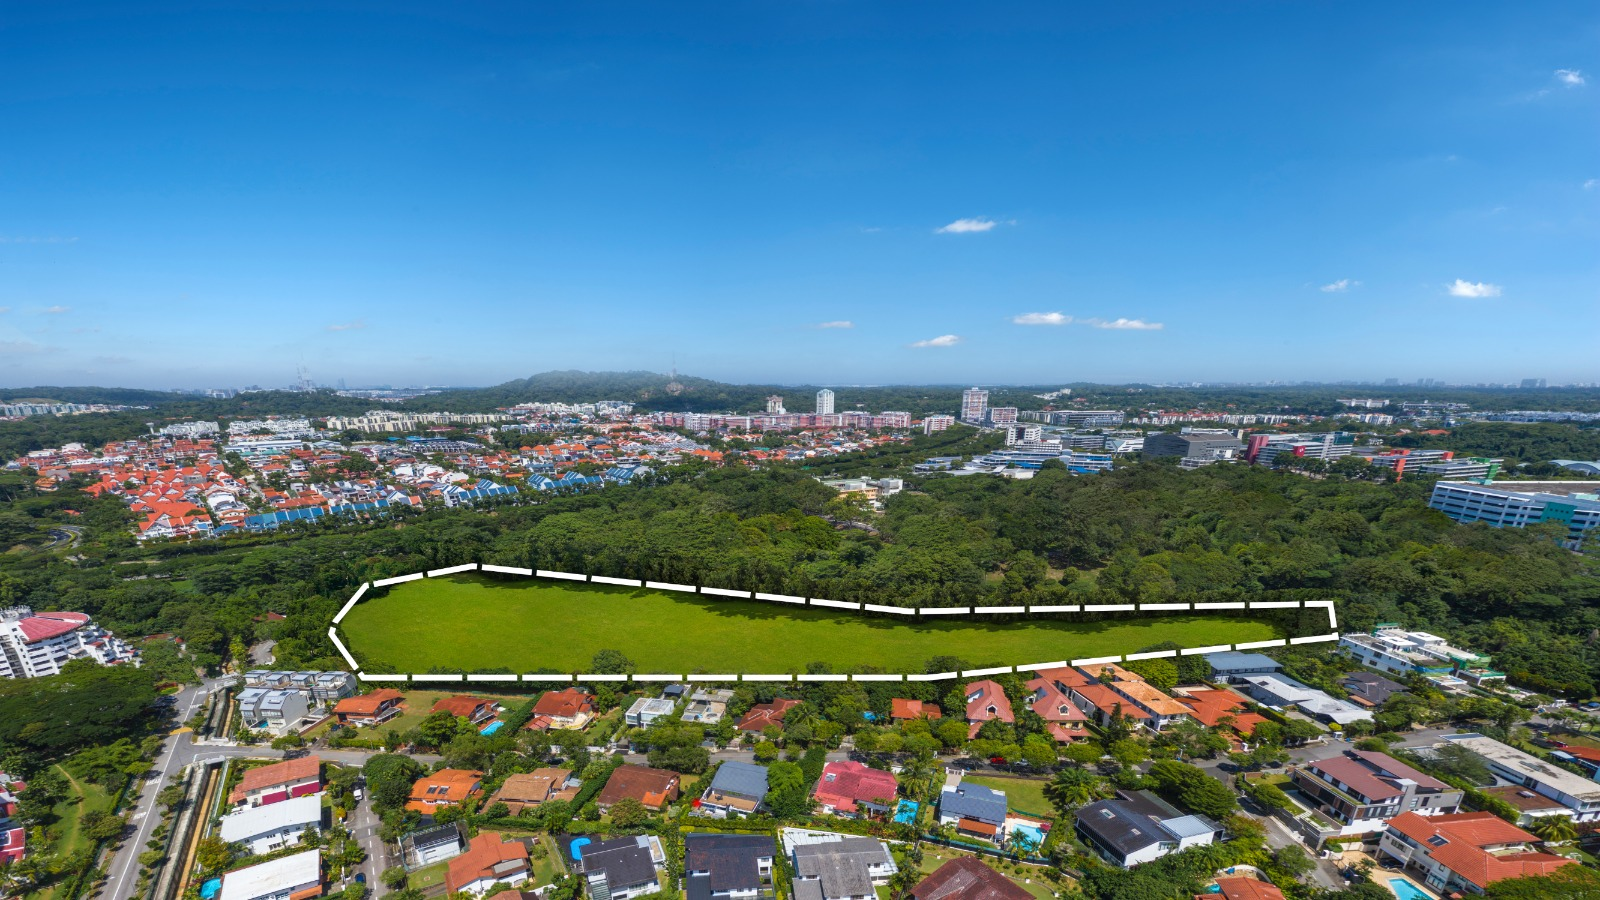 KI Residences Site & Location . Bukit Timah Hill in Background